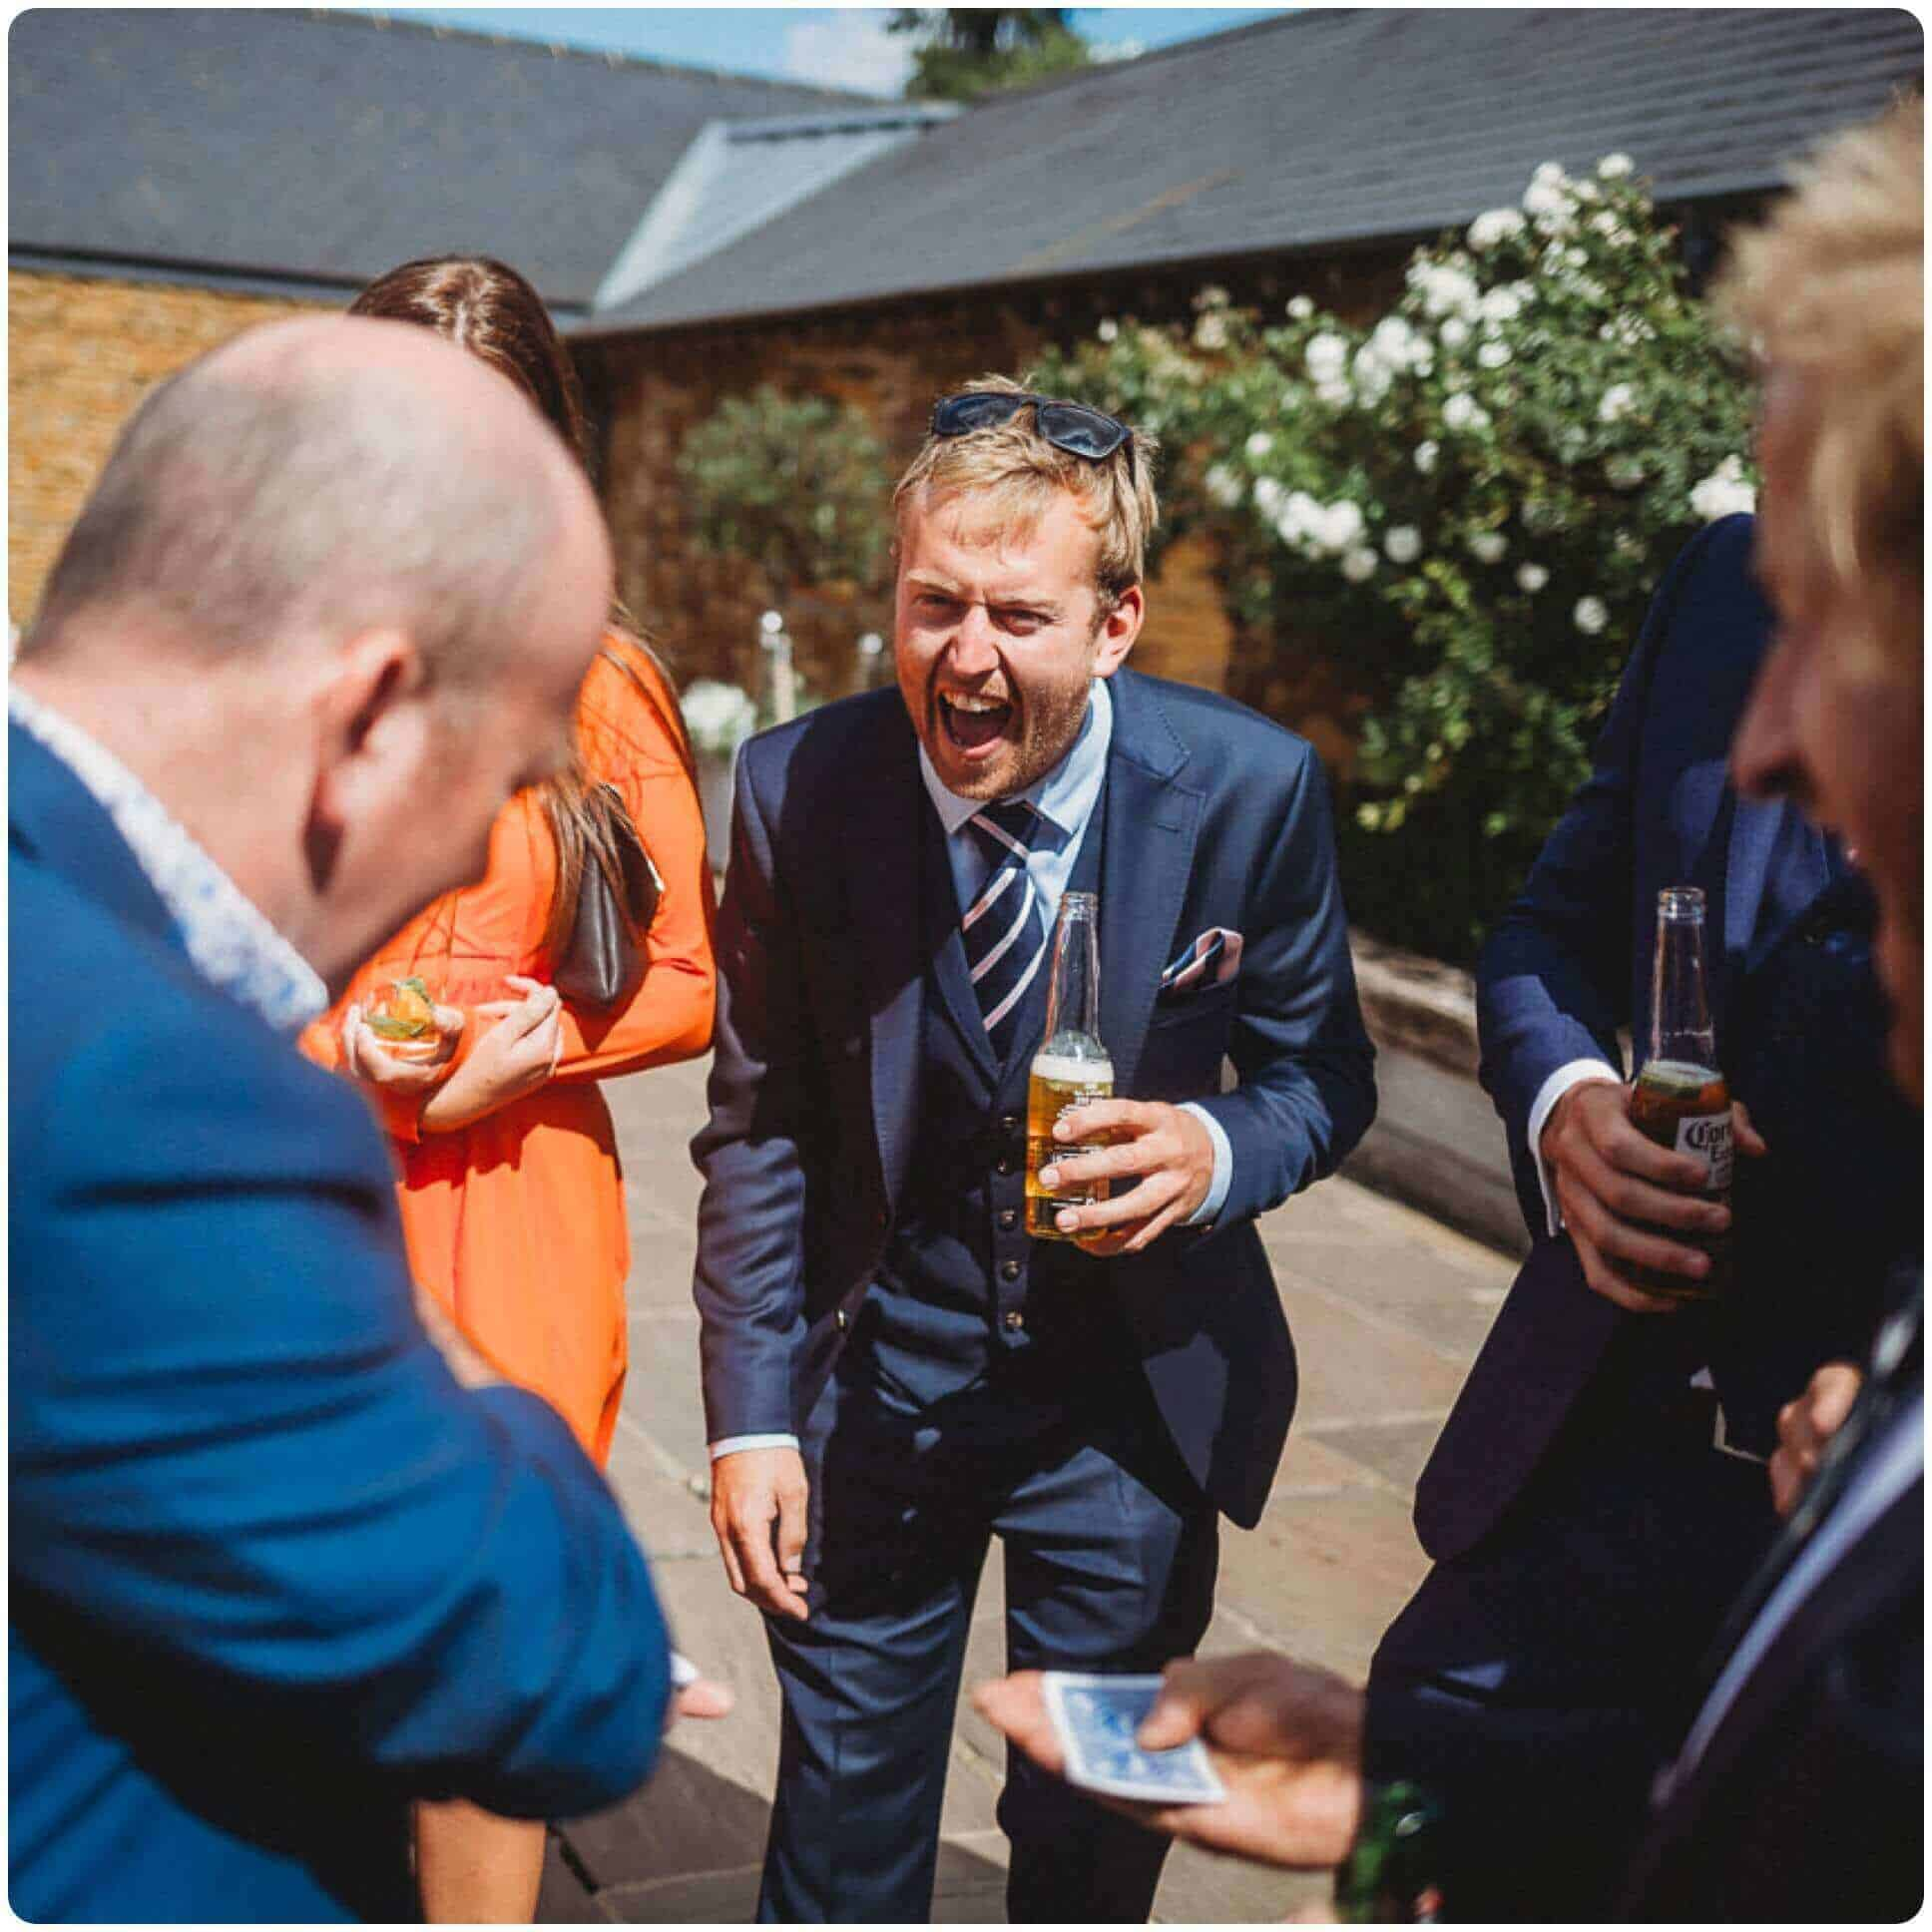 Will Gray performing magic for outside guests at a wedding in Yorkshire